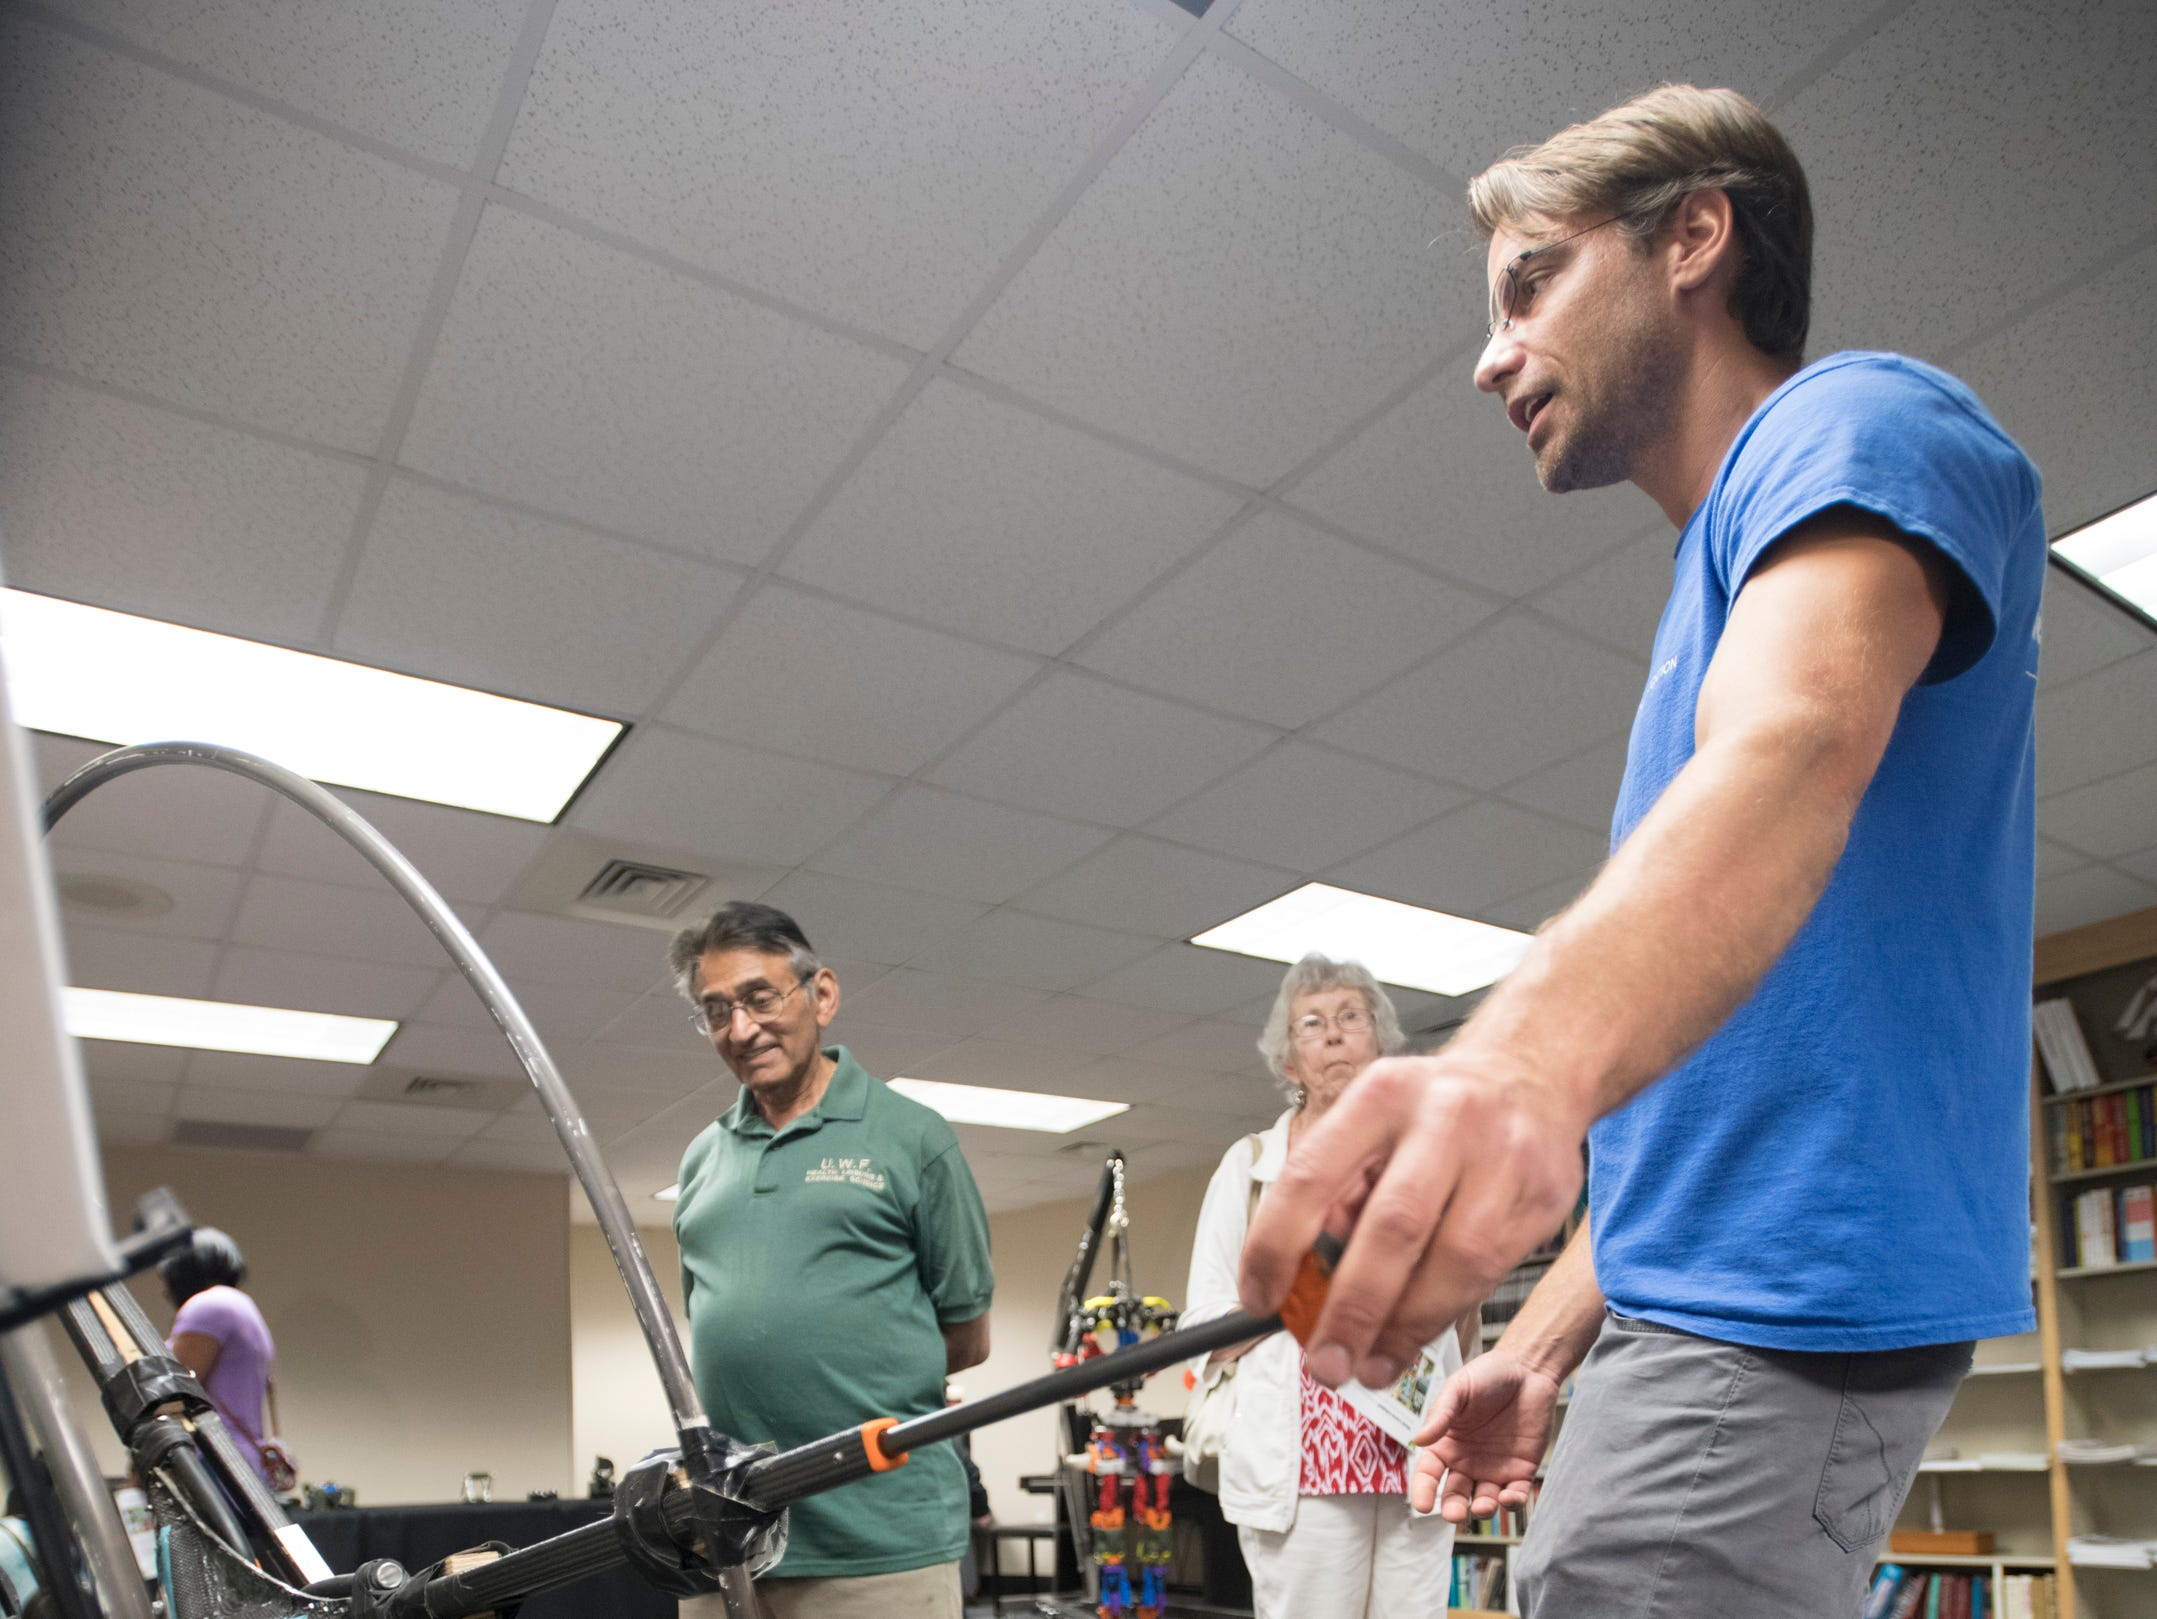 Research scientist Chris Schmidt-Wetekam, right, talks about running robots during the IHMC Open House in downtown Pensacola on Friday, April 12, 2019.